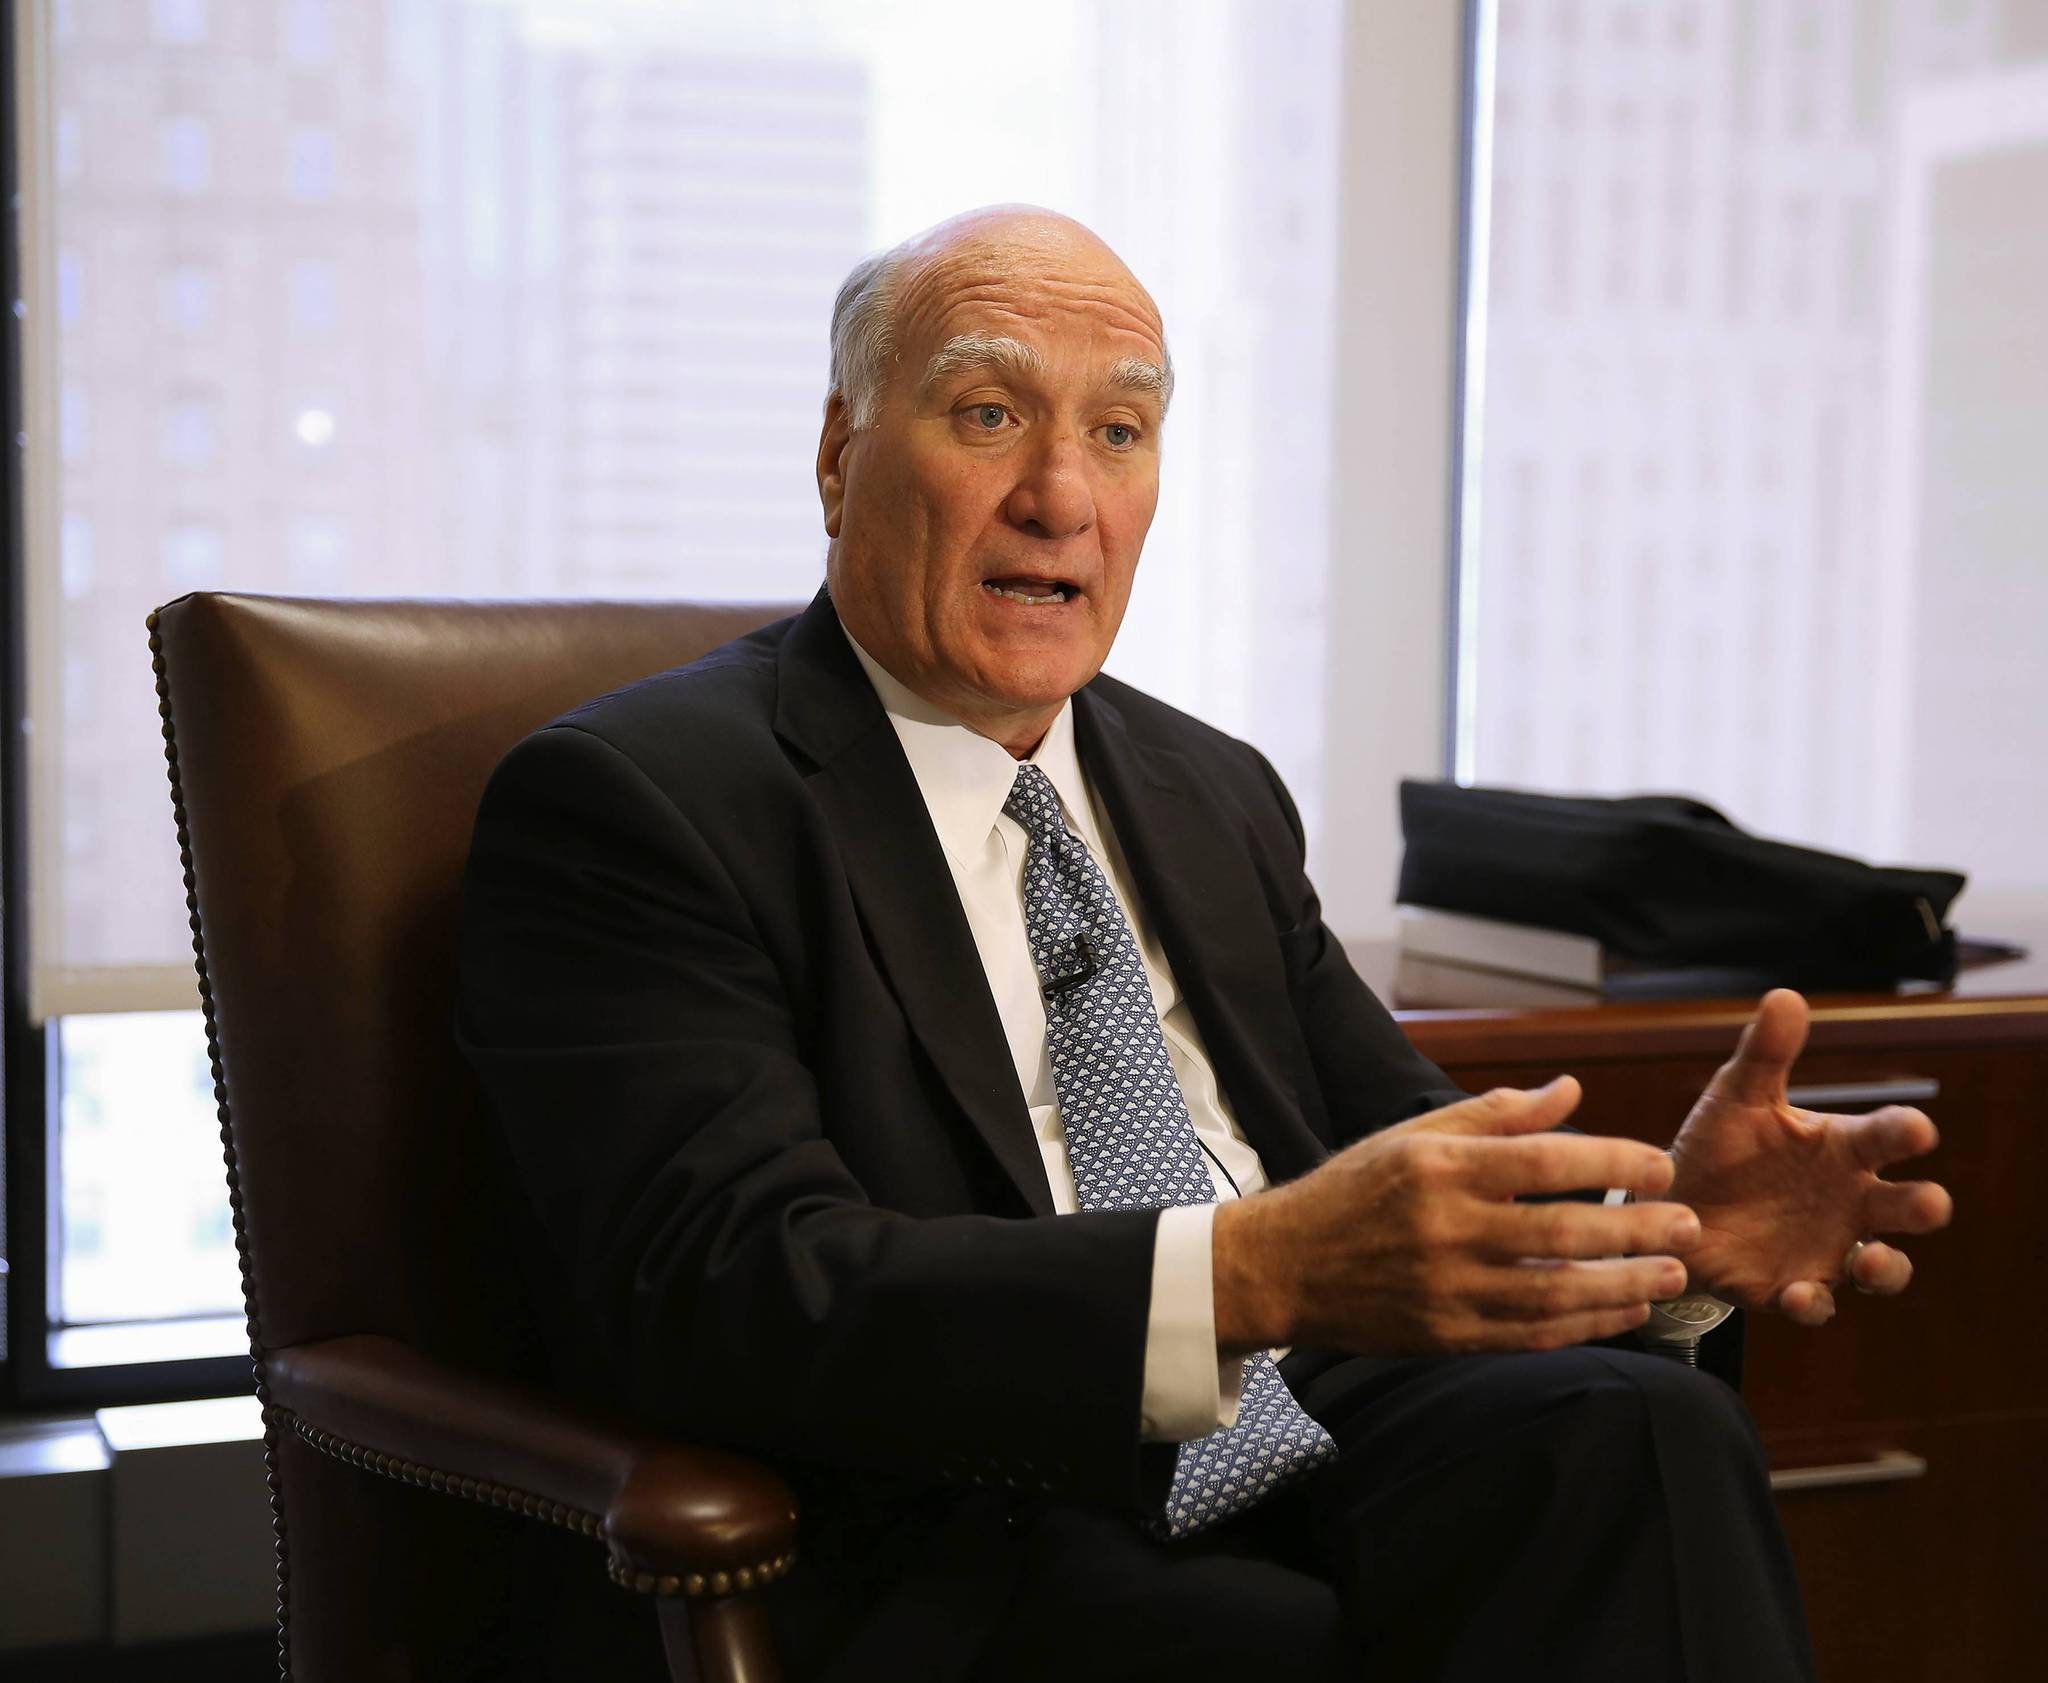 William M. Daley, in his office in Chicago, states in an interview that he is aborting his run for the office of governor of Illinois.